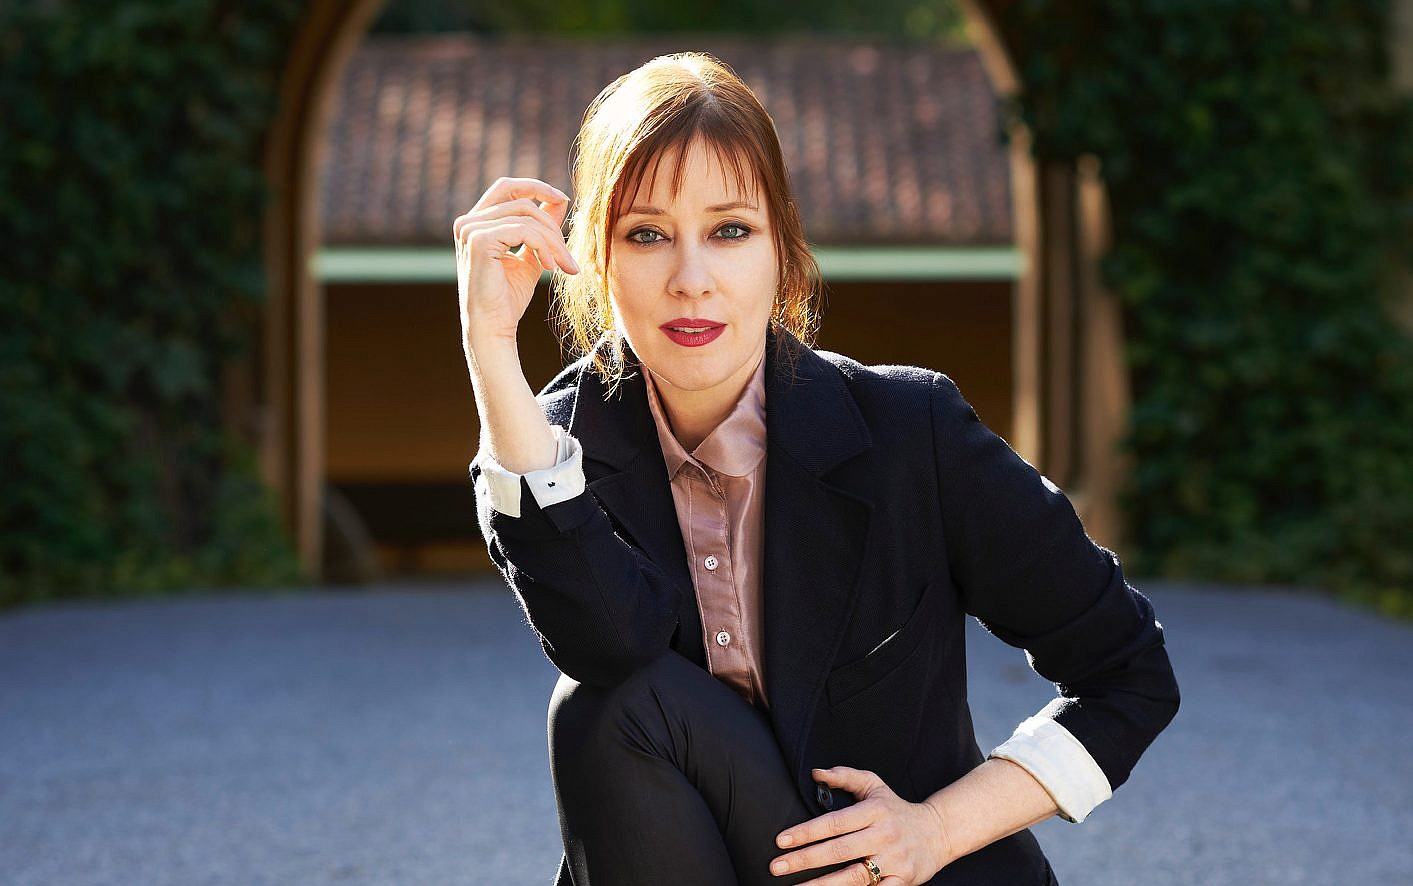 Suzanne Vega returns to Israel for 2 back-to-back